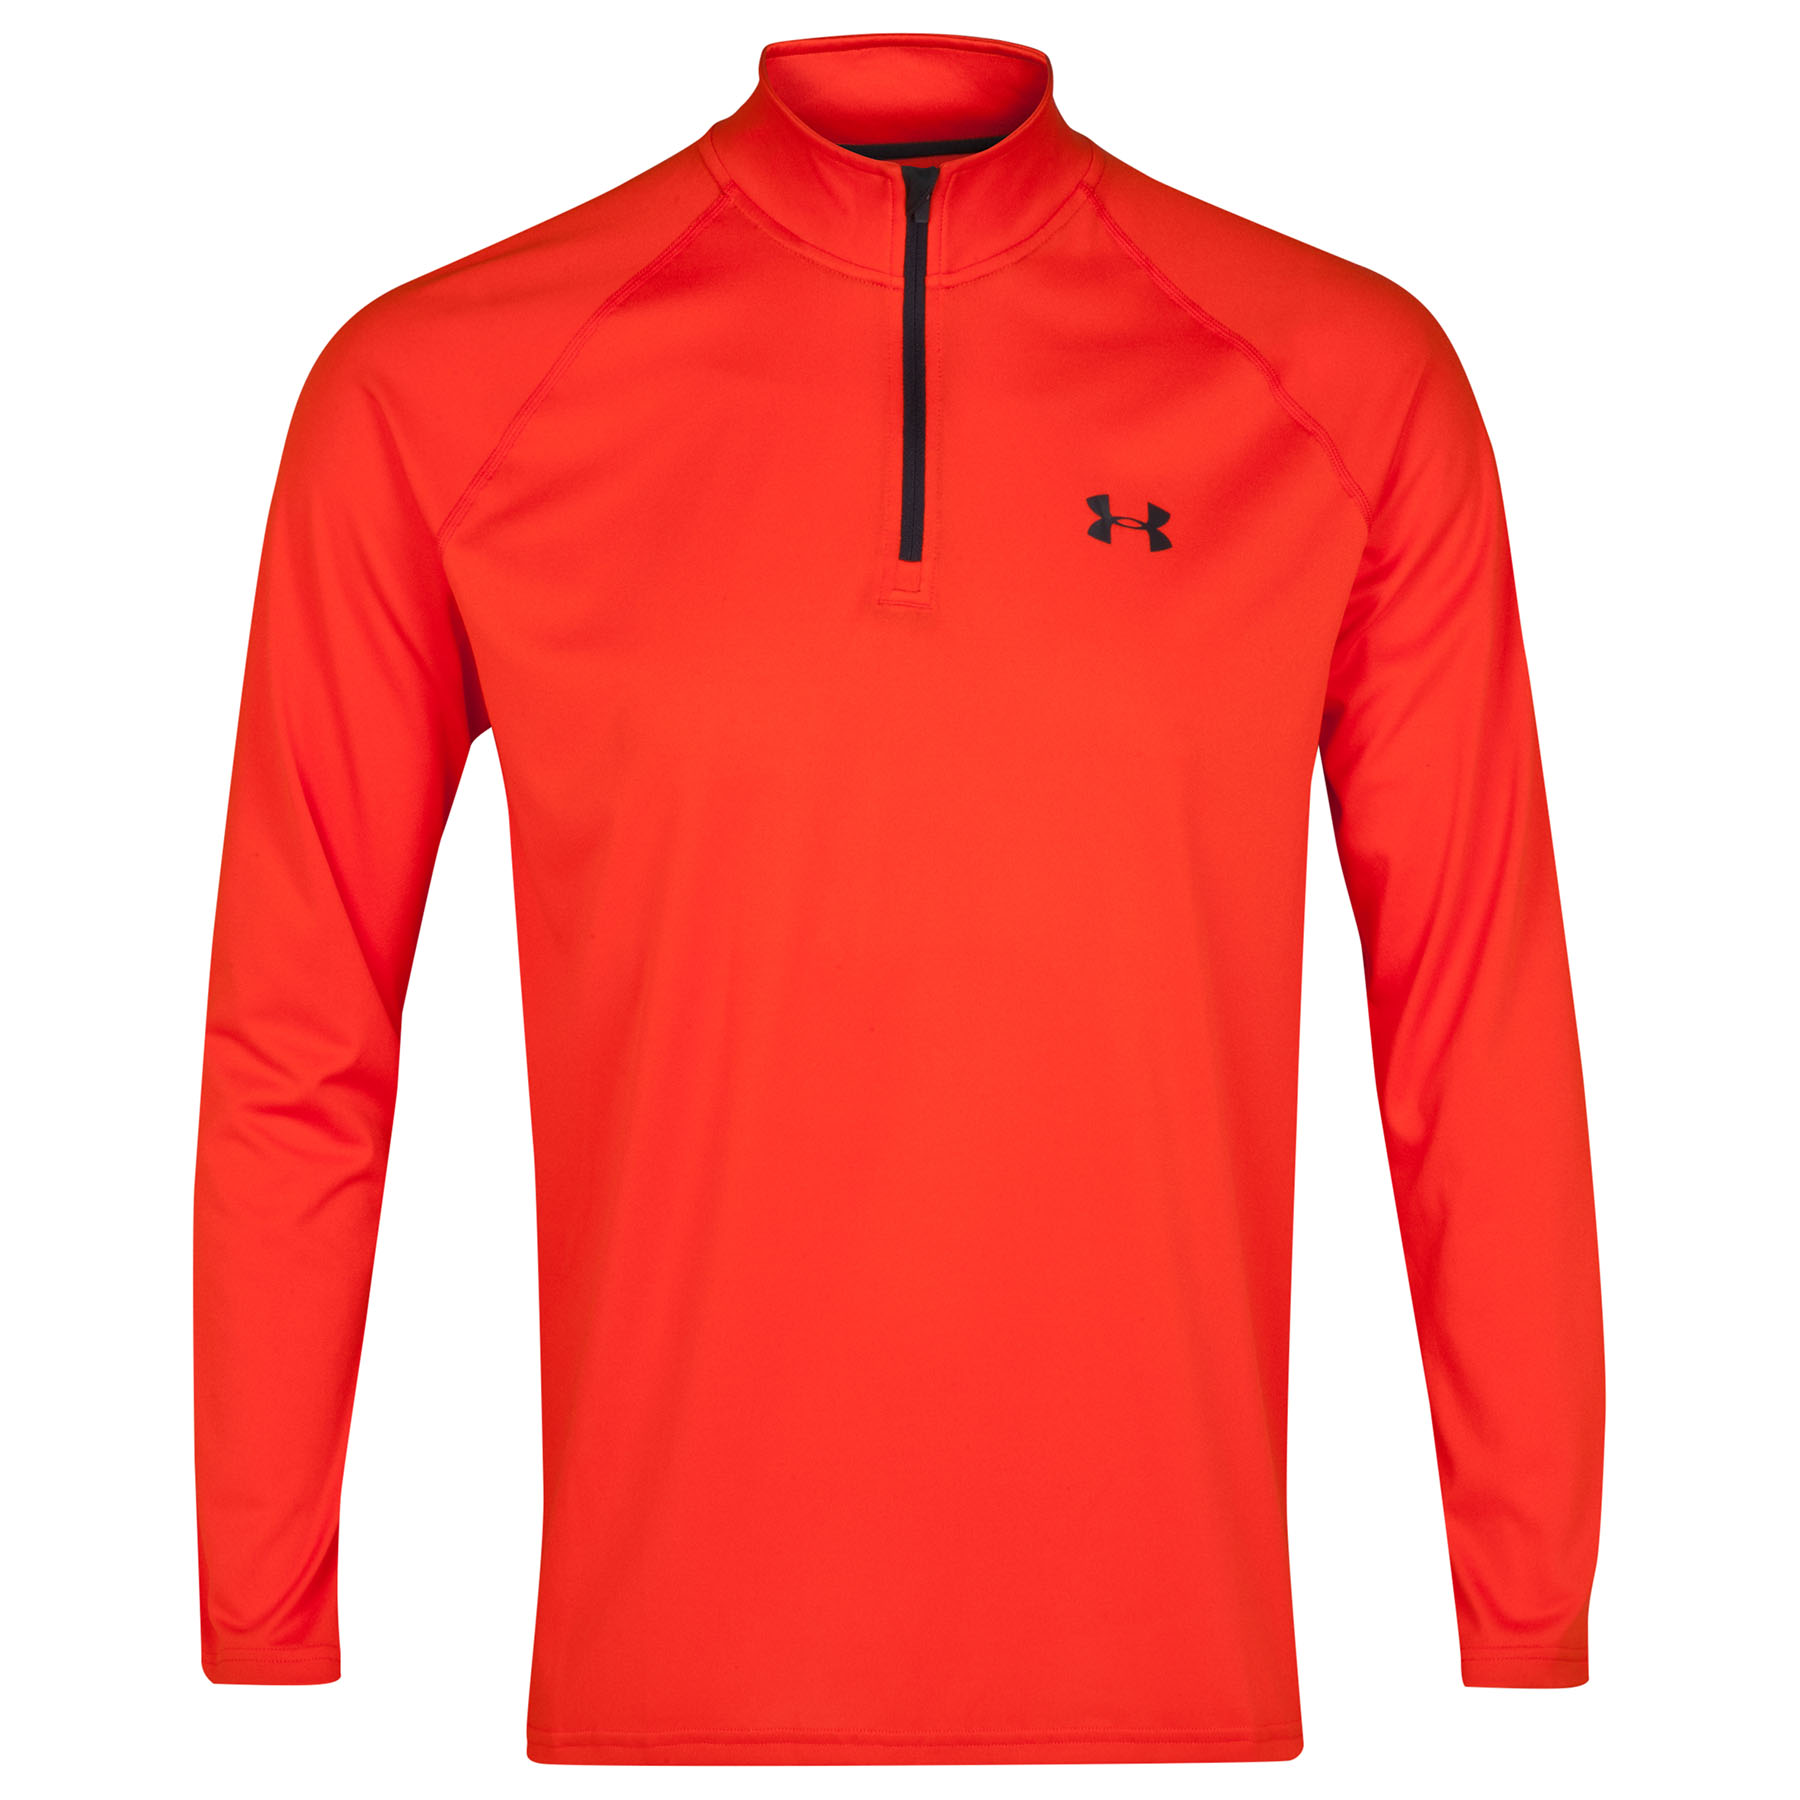 Under Armour Tech 1/4 Zip Top Red